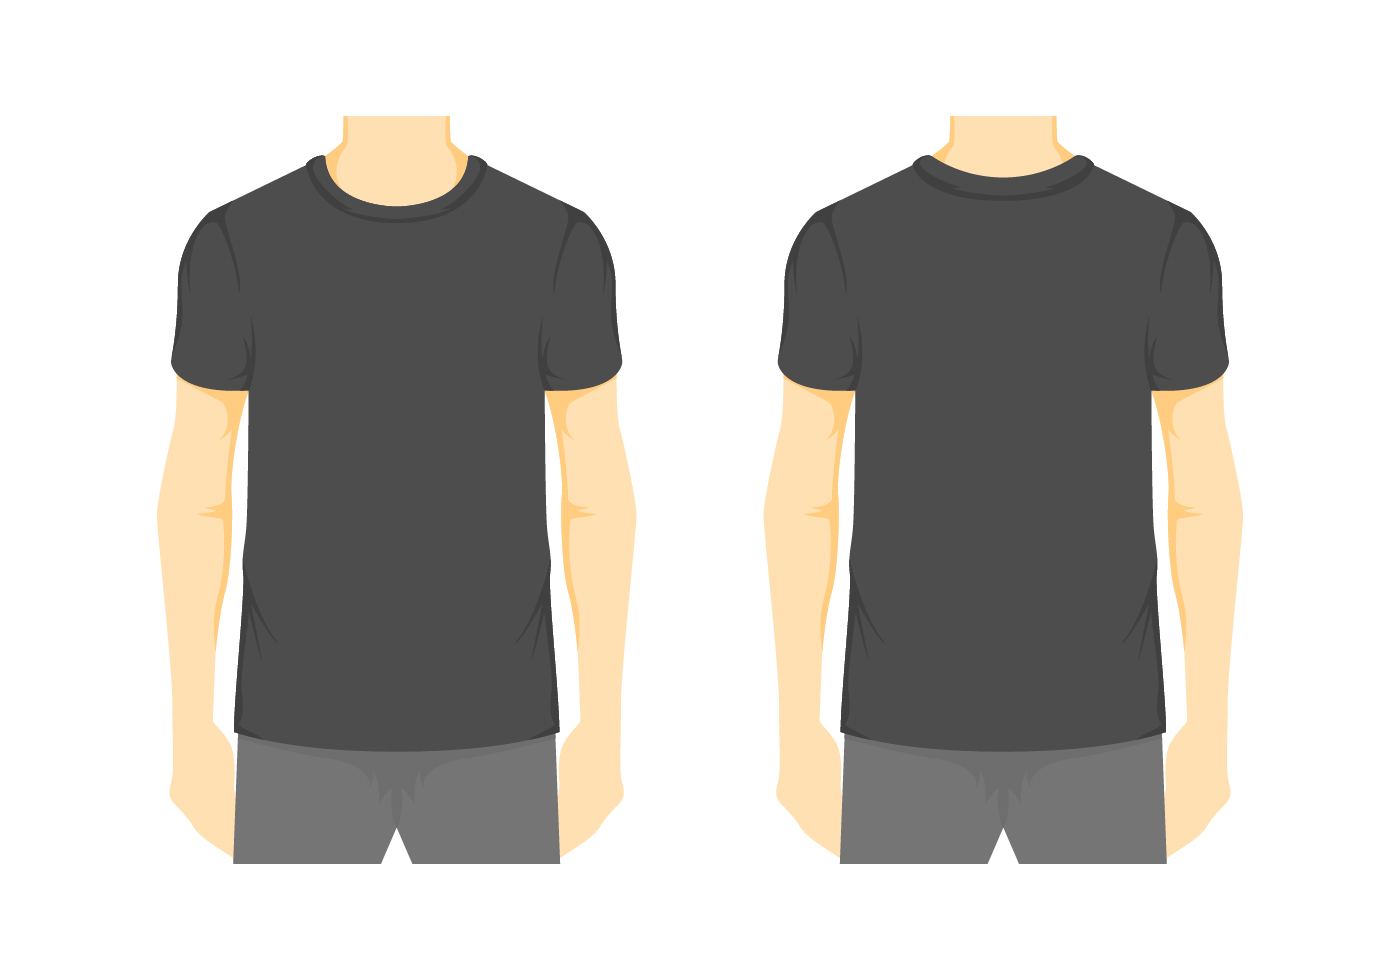 cf61f5f65 T Shirt Free Vector Art - (5,024 Free Downloads)